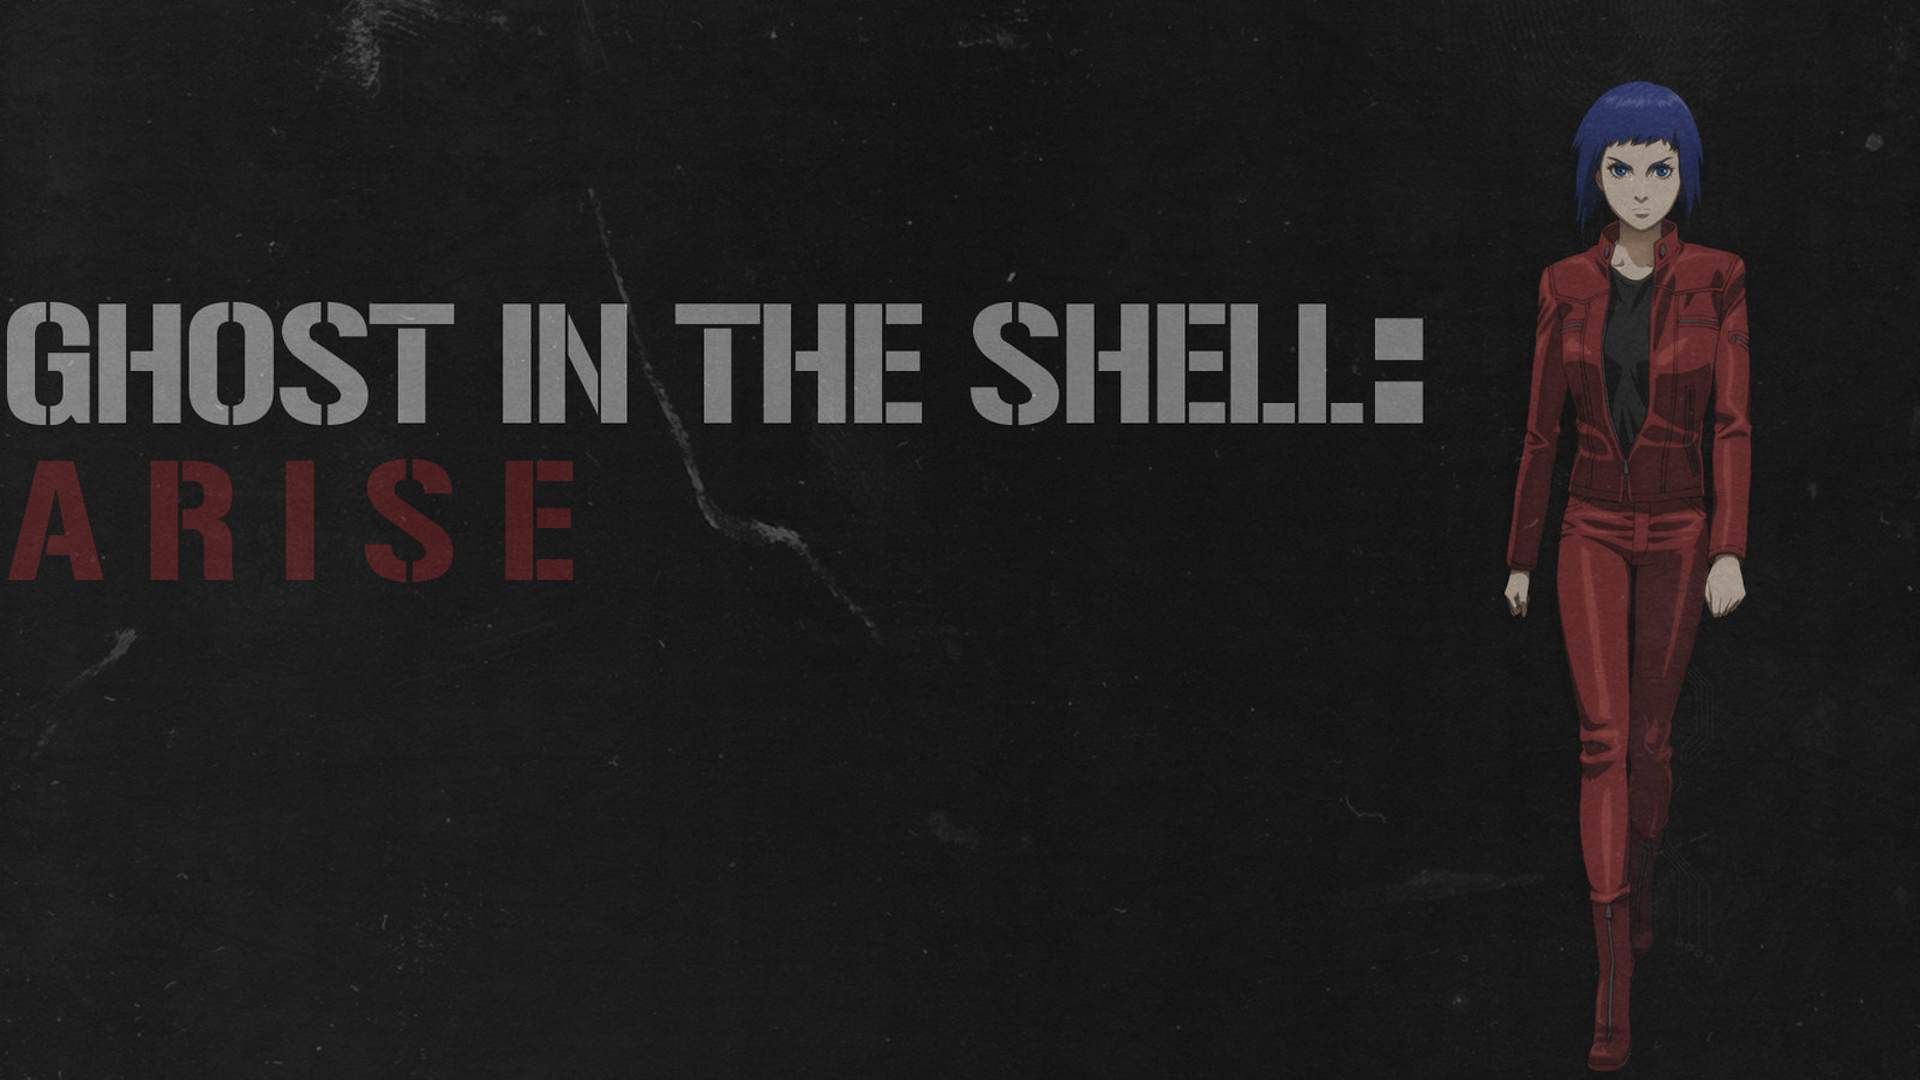 Ghost in the Shell: Arise border:2 teaser trailer